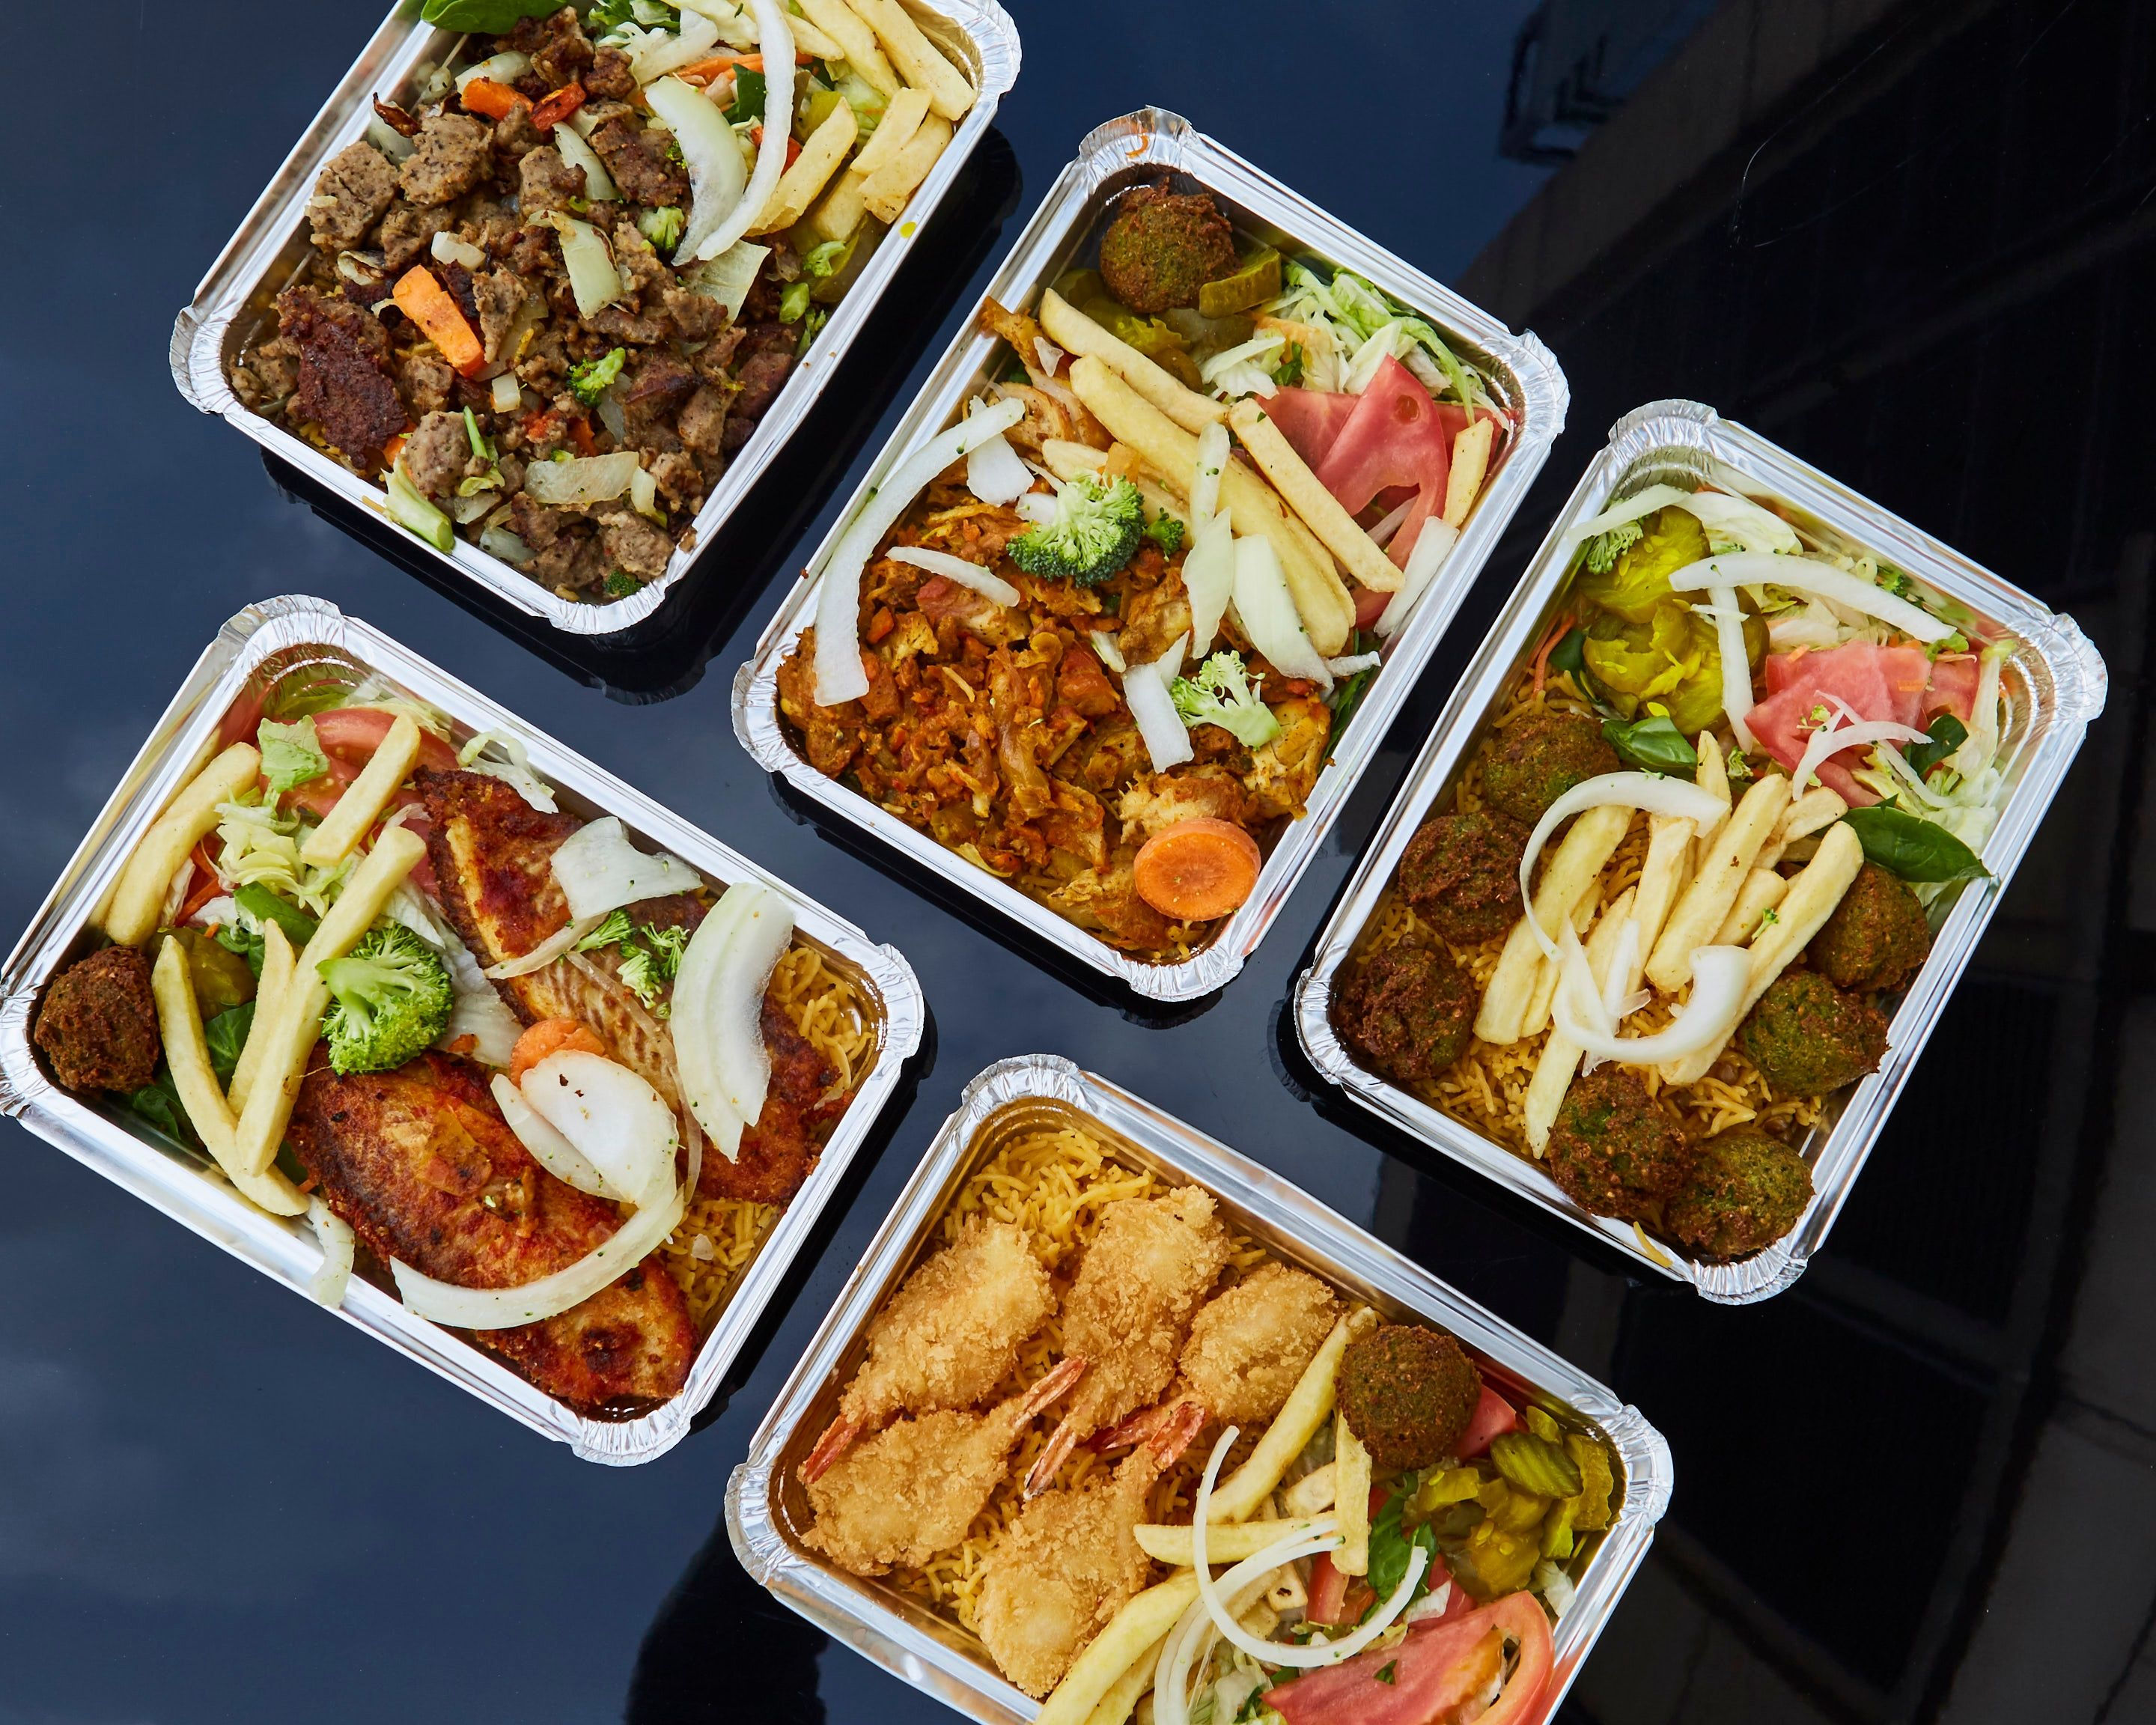 Order King Cab Halal Food 36th St Delivery Online New York City Menu Prices Uber Eats